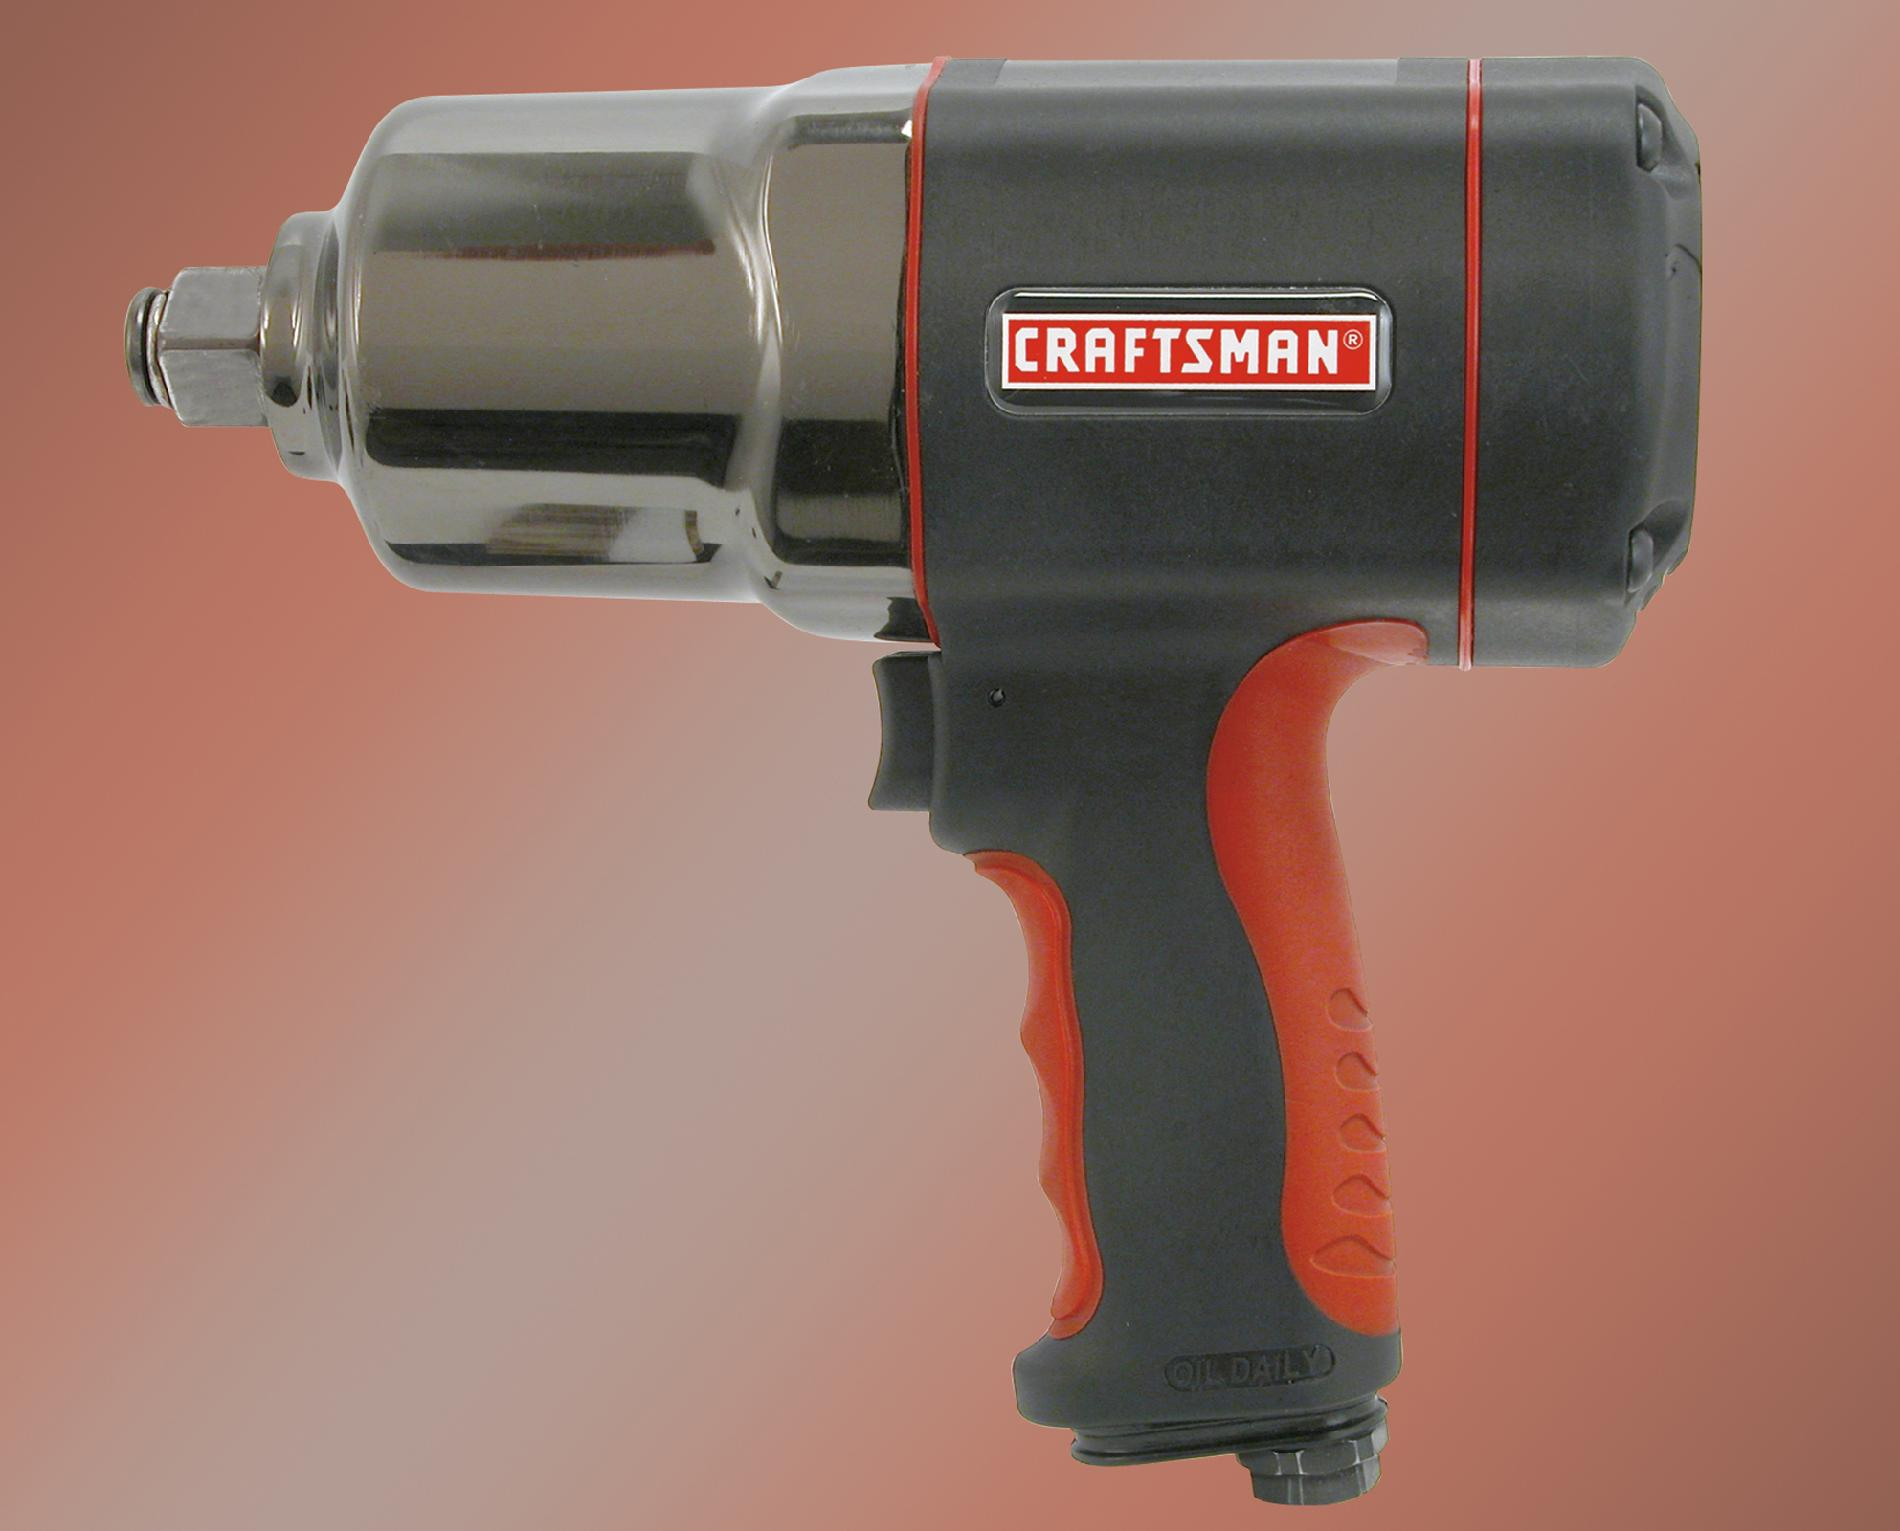 Craftsman 3/4 in. Heavy Duty Impact Wrench